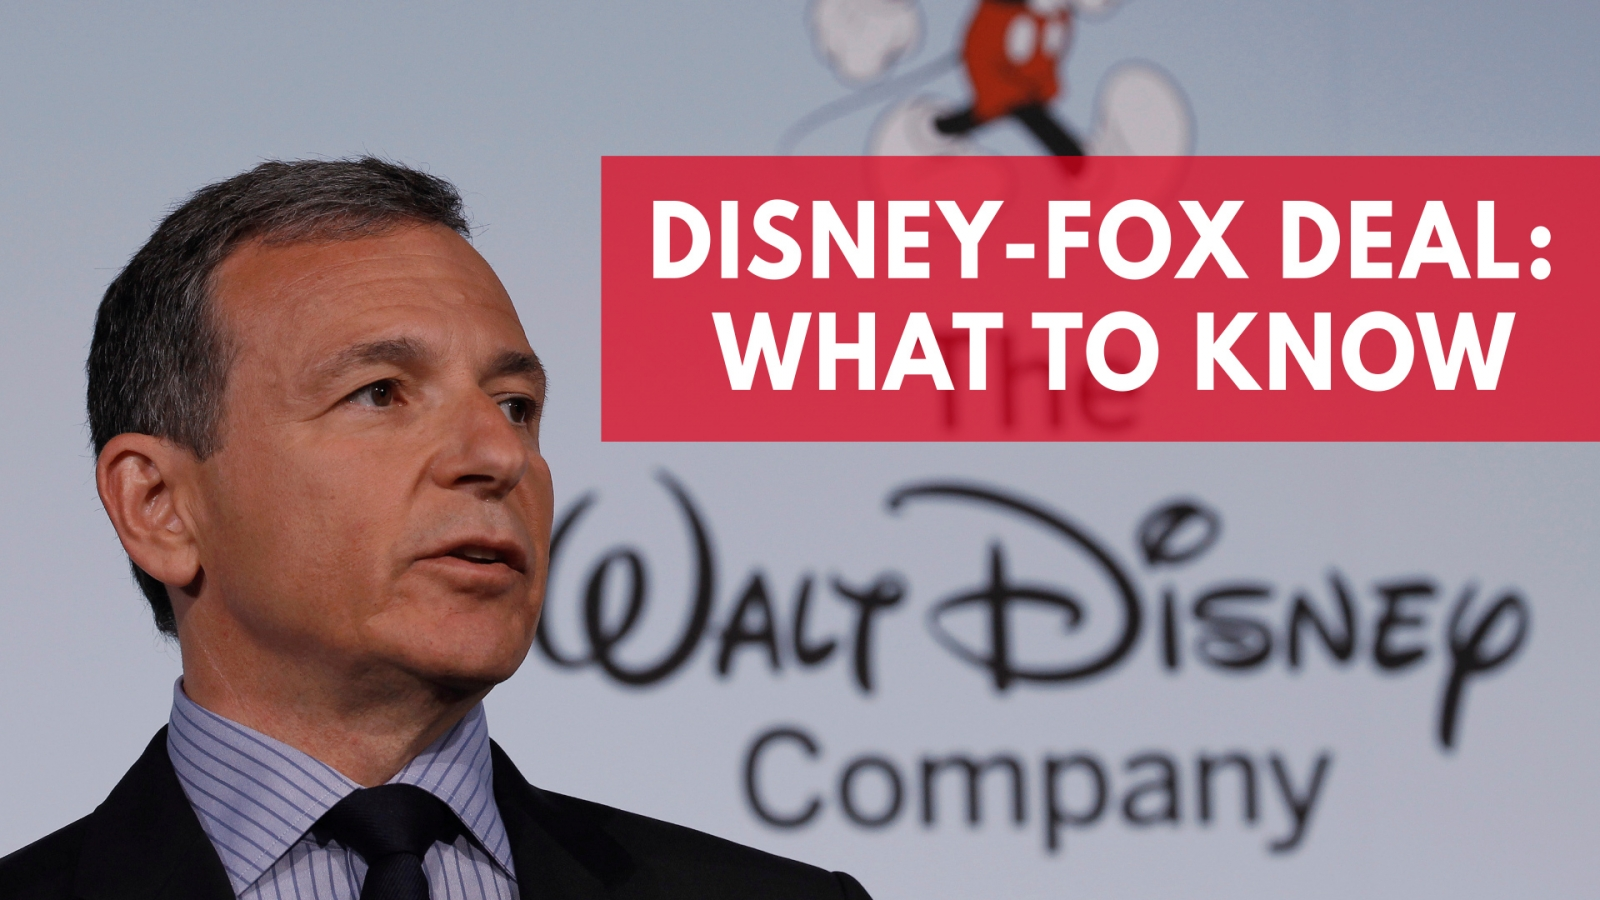 disney-fox-deal-what-to-know-about-the-massive-merger